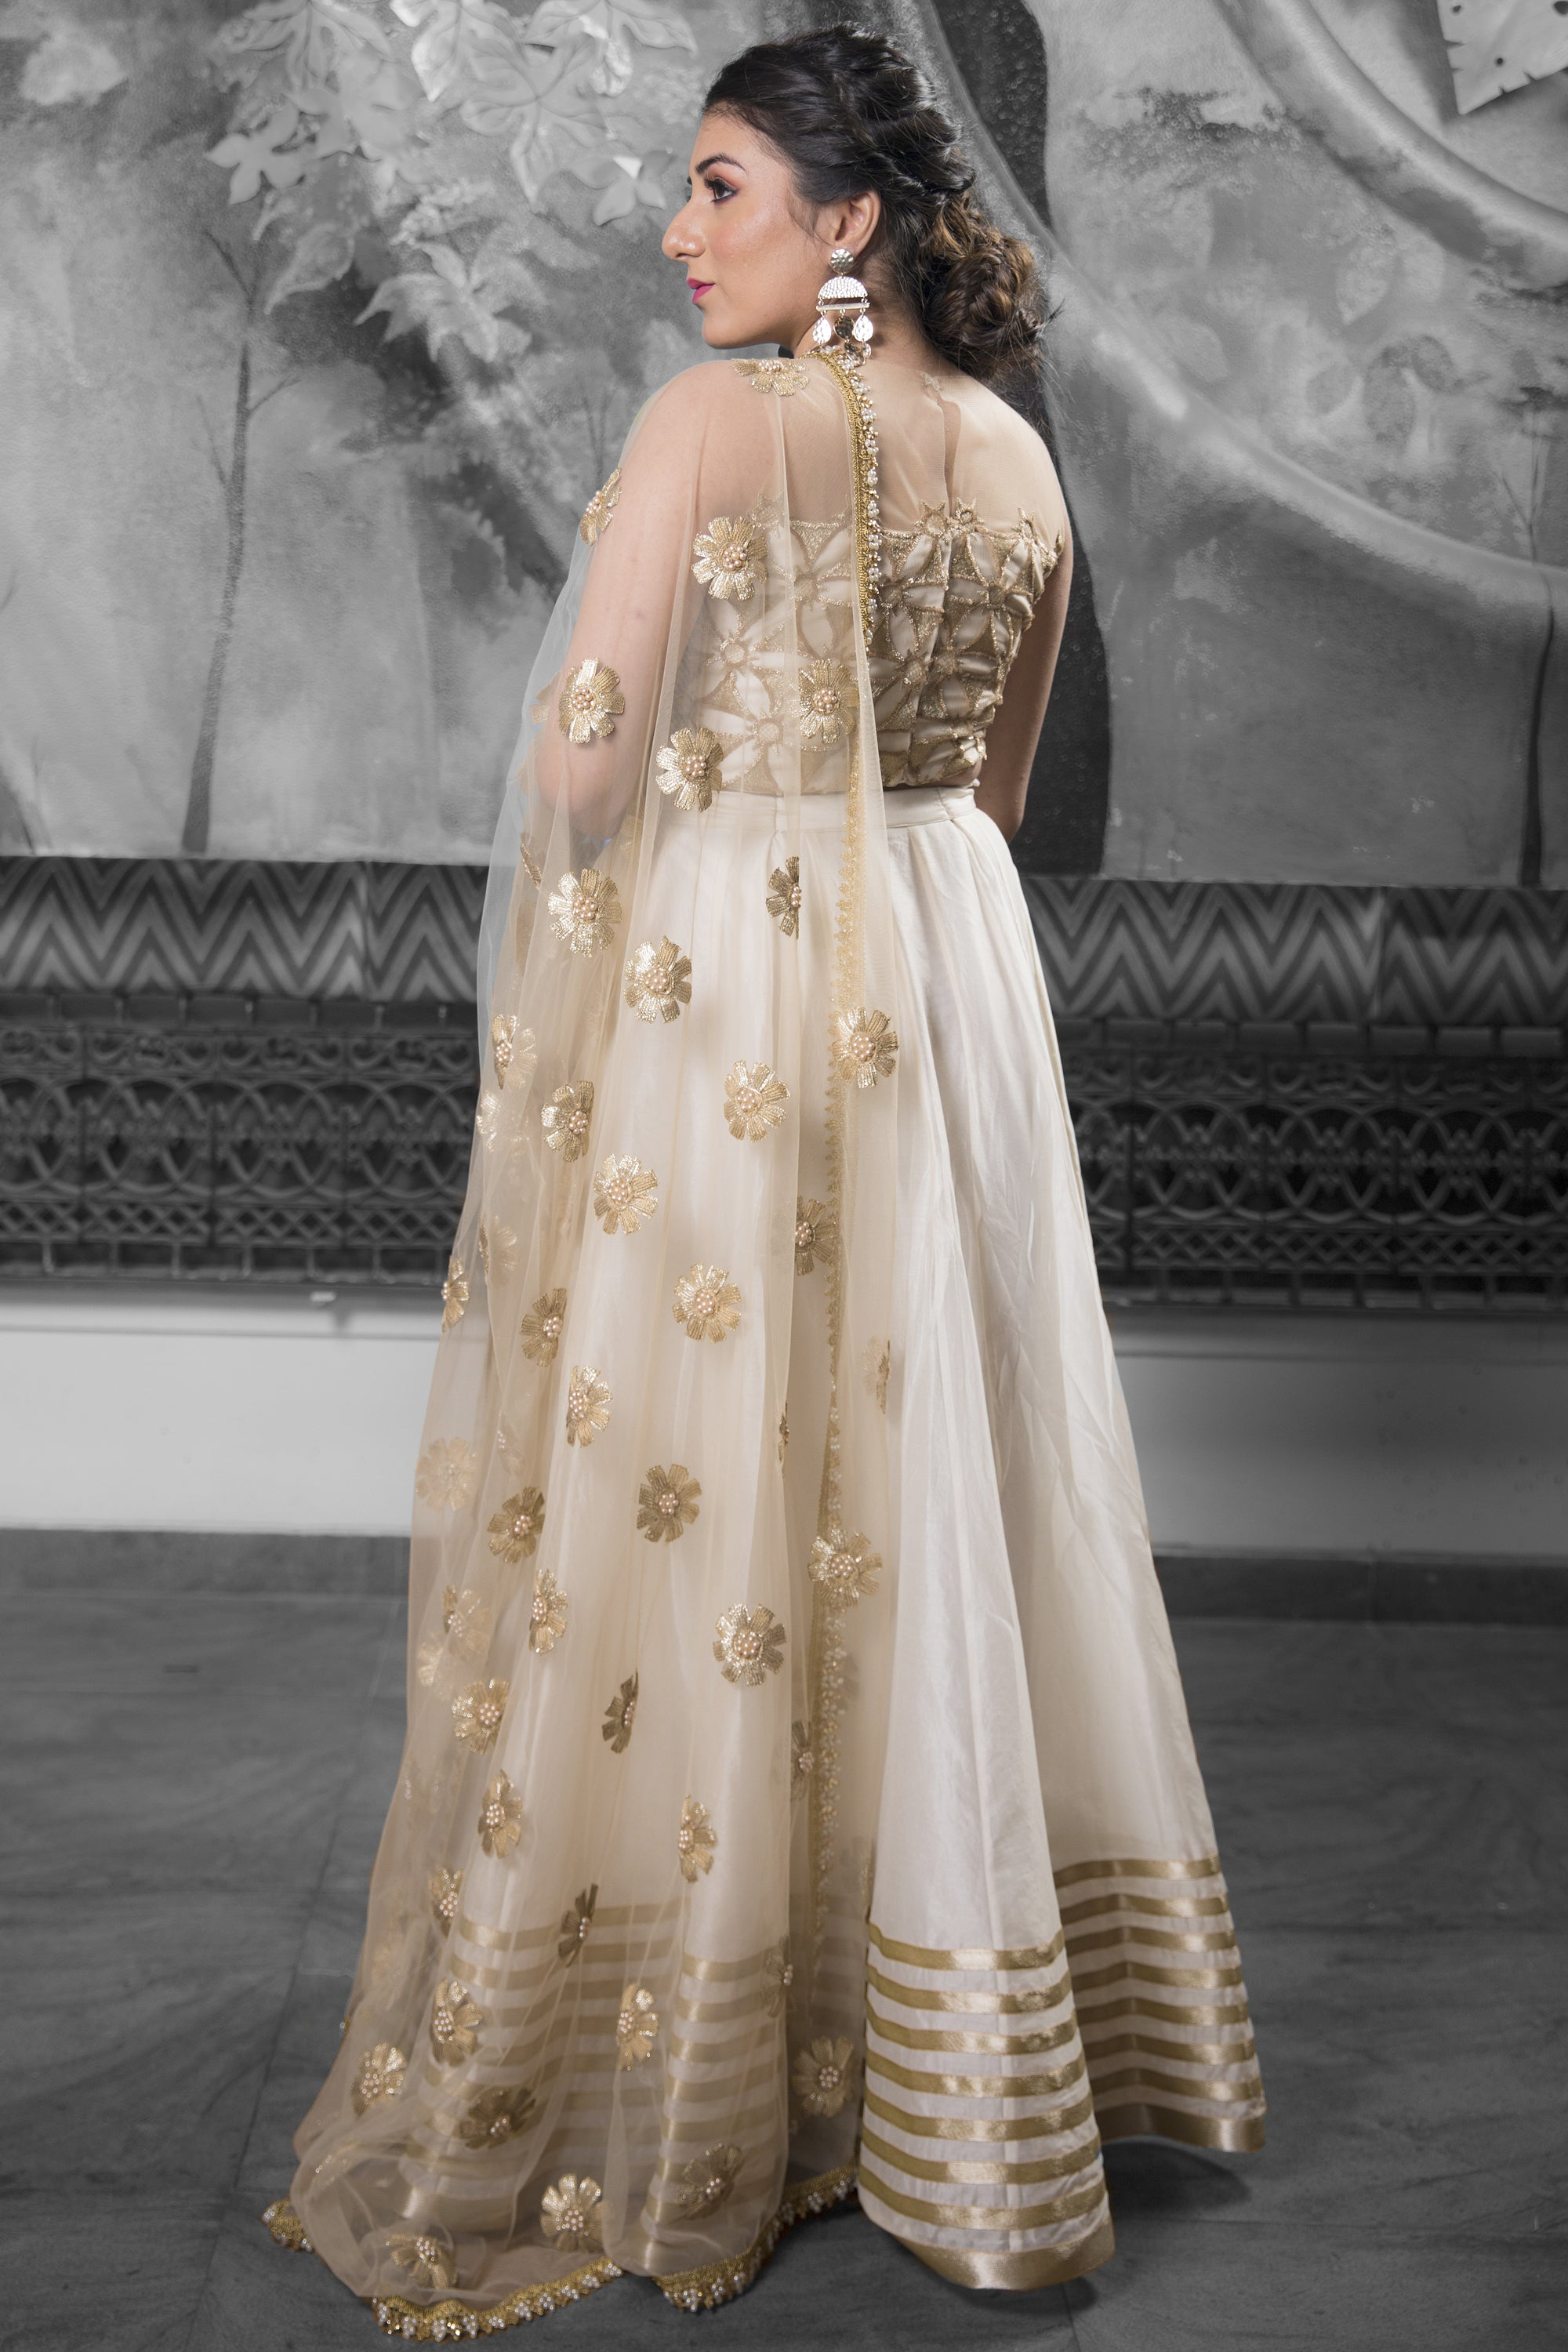 Ivory & Gold Lehenga With Cutwork & Pearls BACK